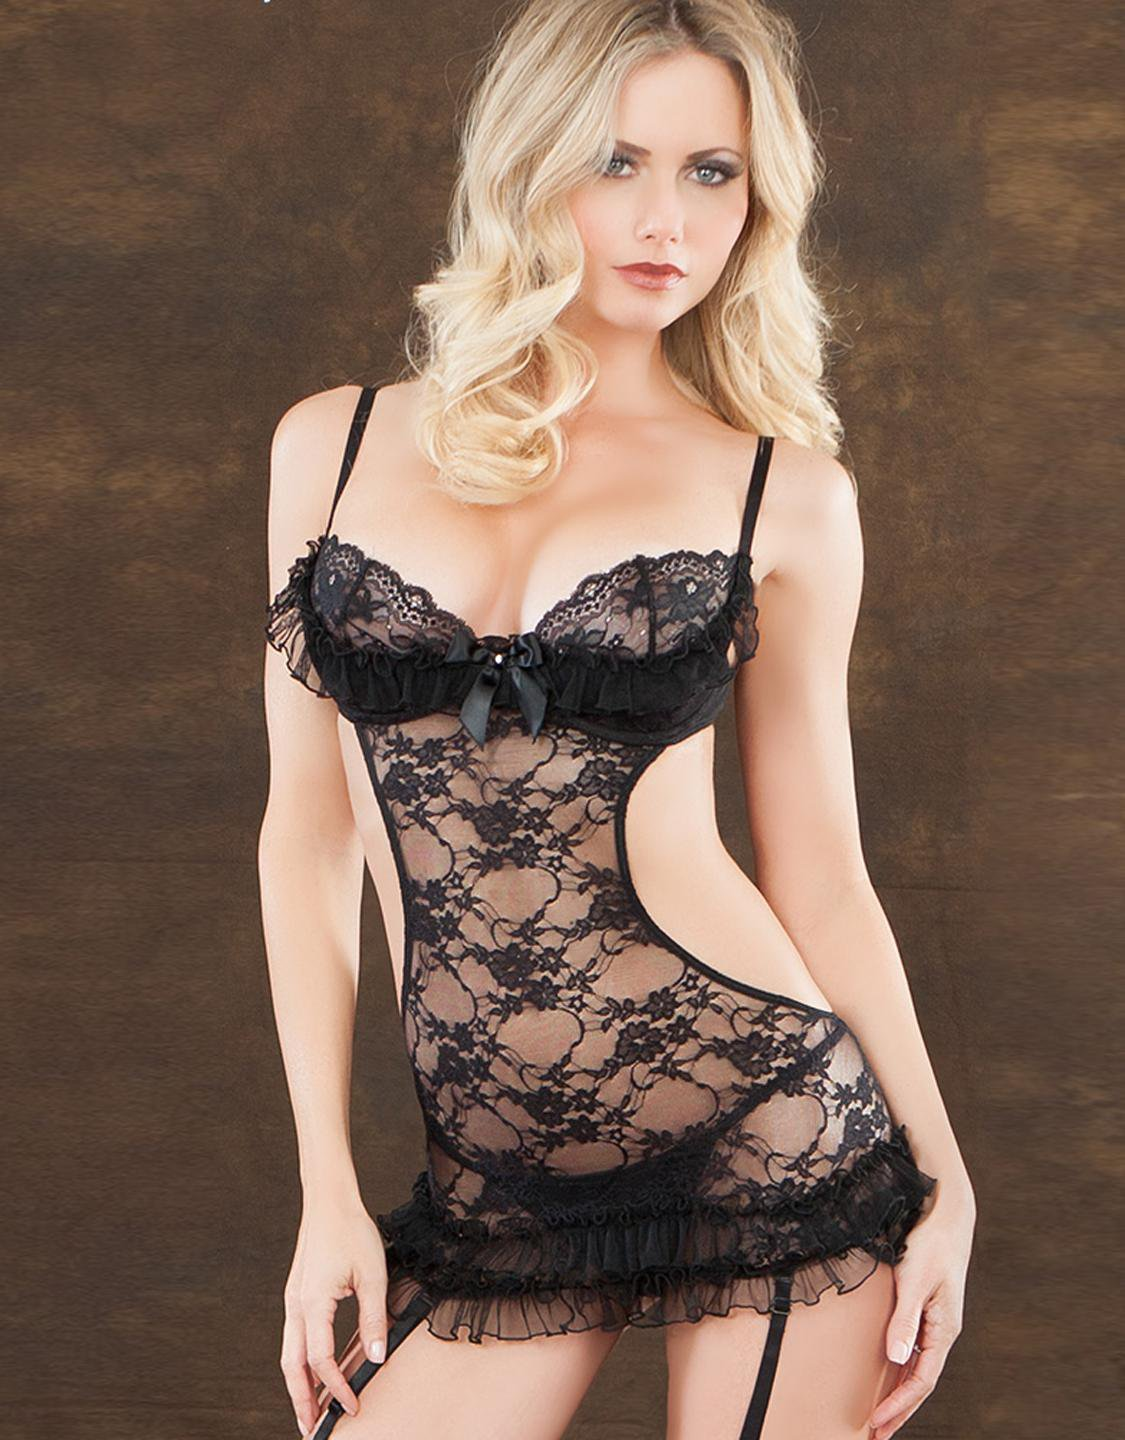 Hot Halter Sexy Tight Midnight Black Lace Ruffle Gartered Chemise With Removable Garters W6556B